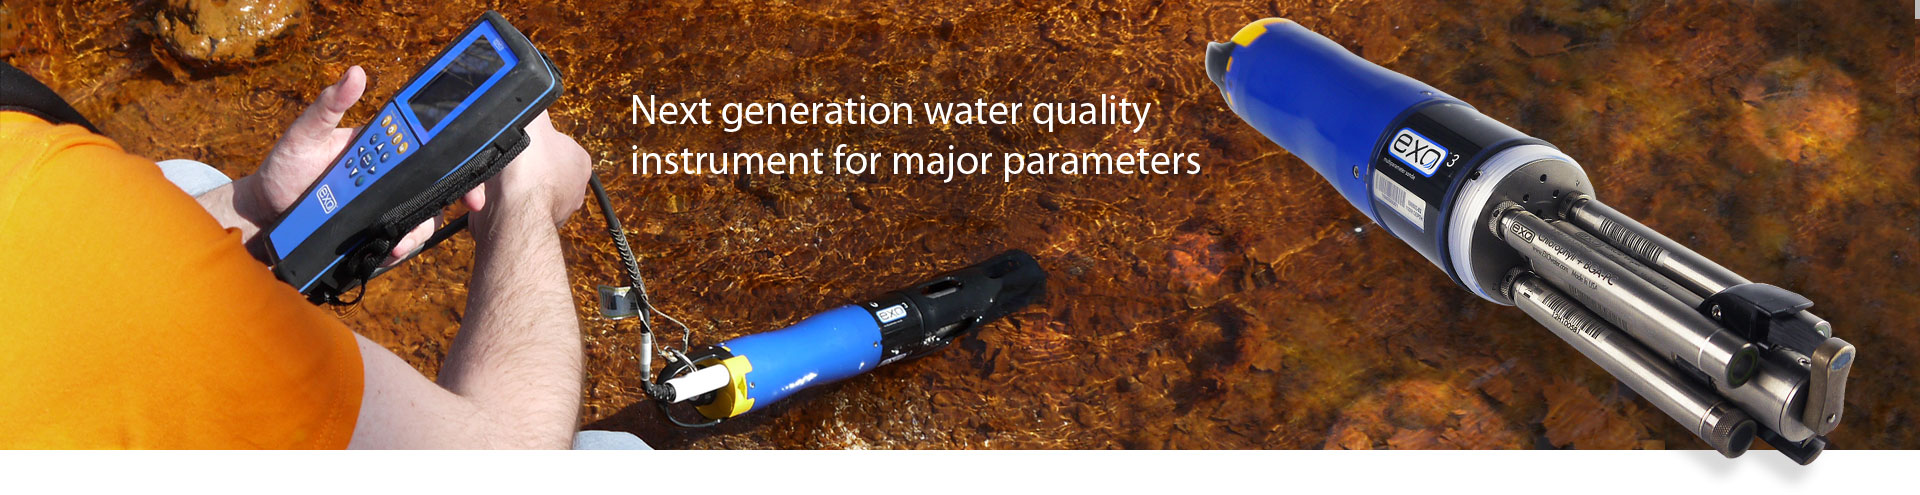 Next generation water quality instrument for major parameters